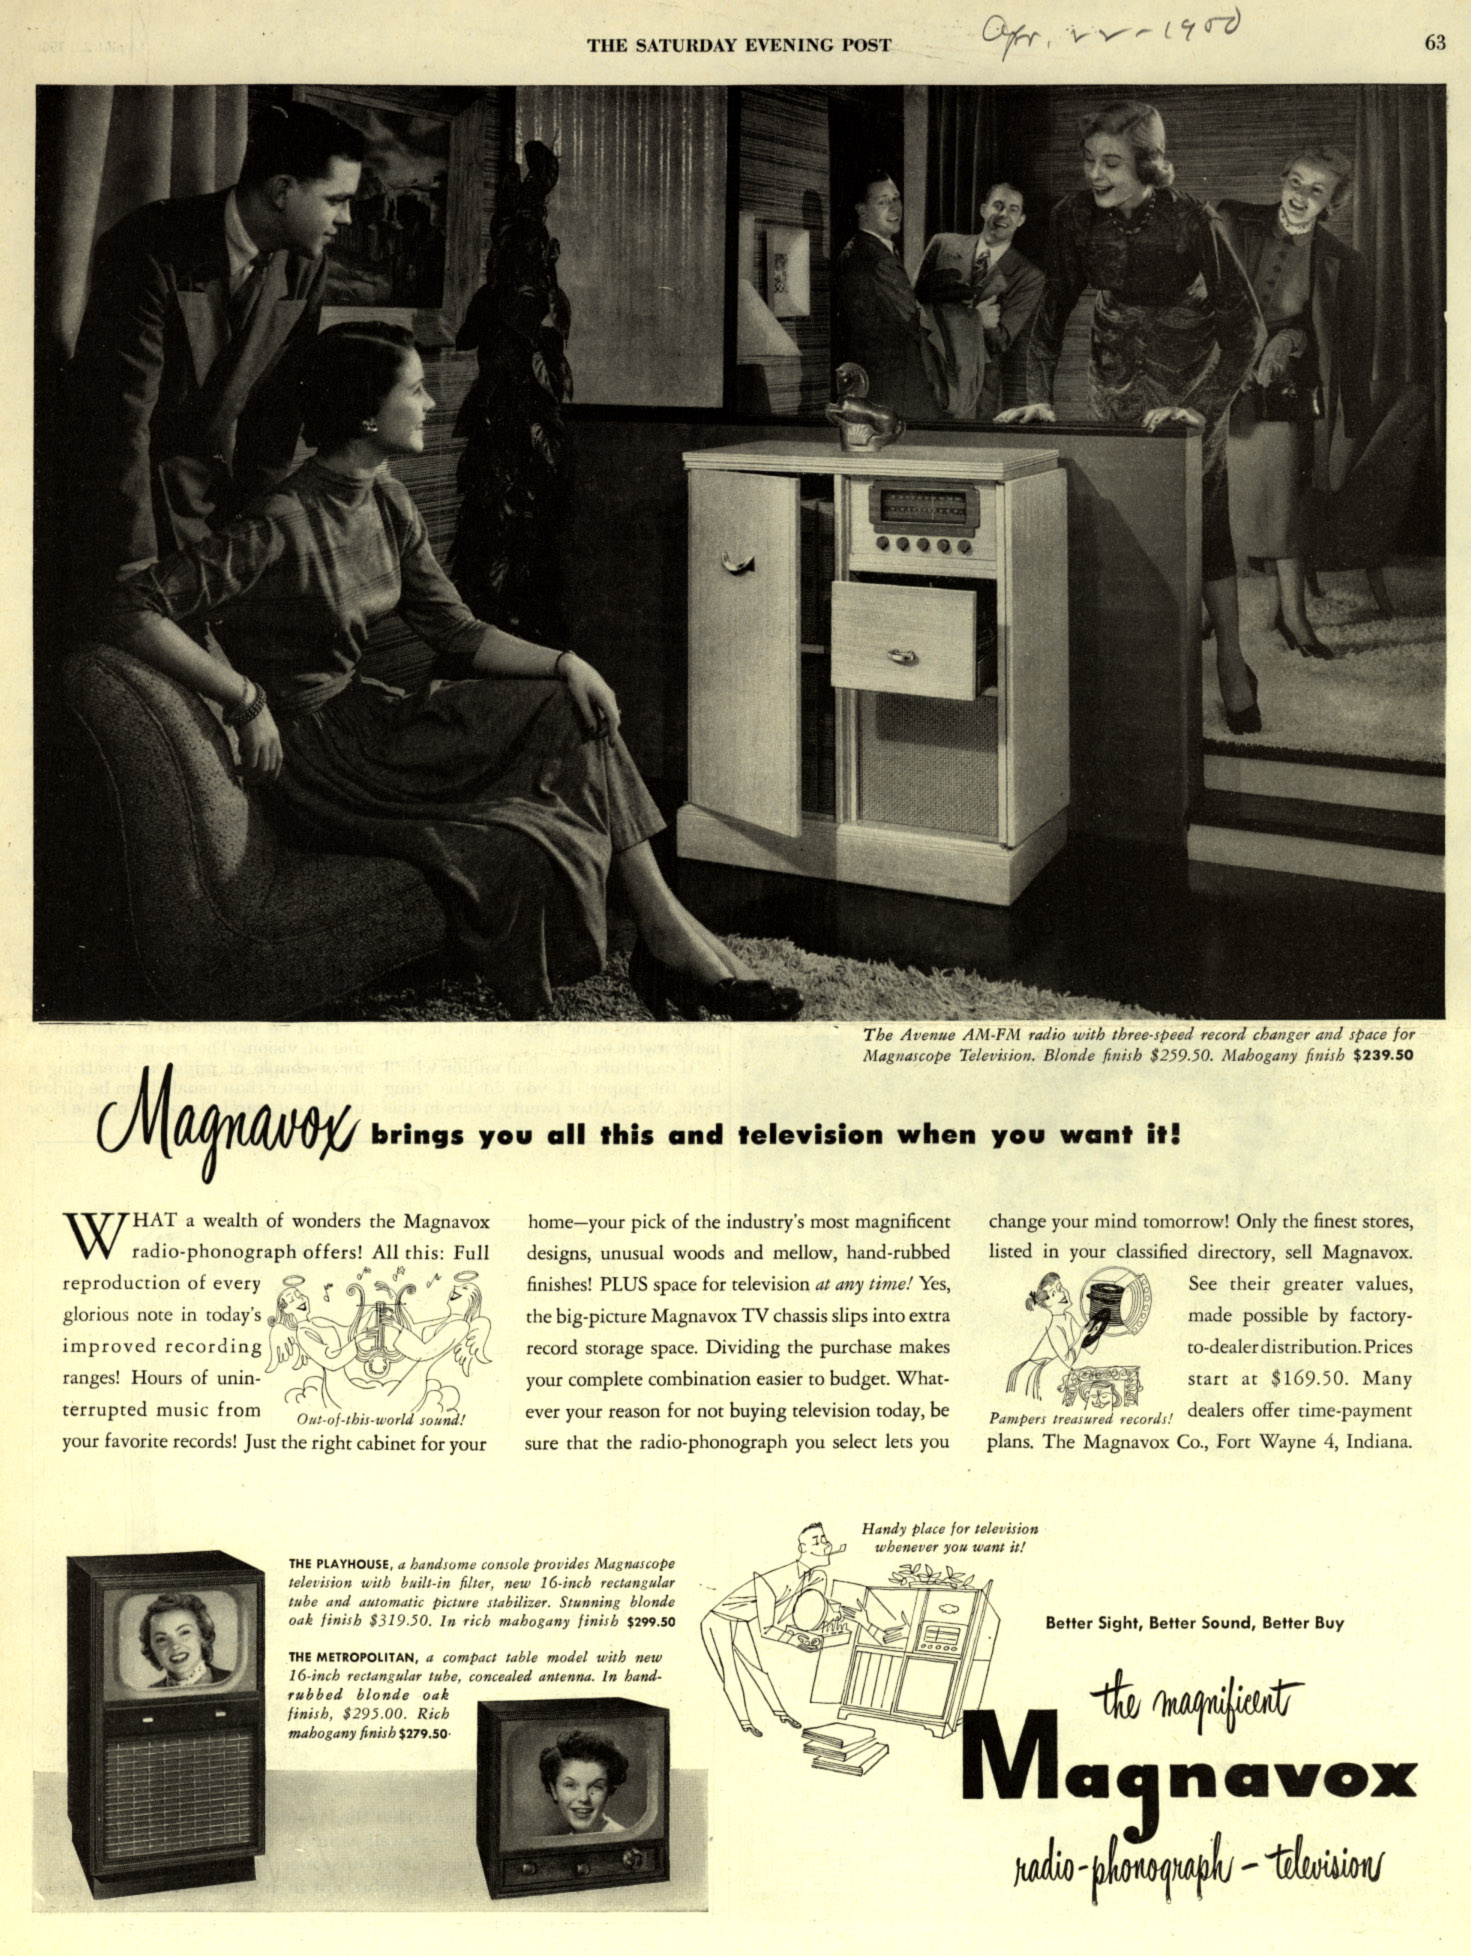 Magnavox_brings_you_all_this_and_television_when_you_want_it